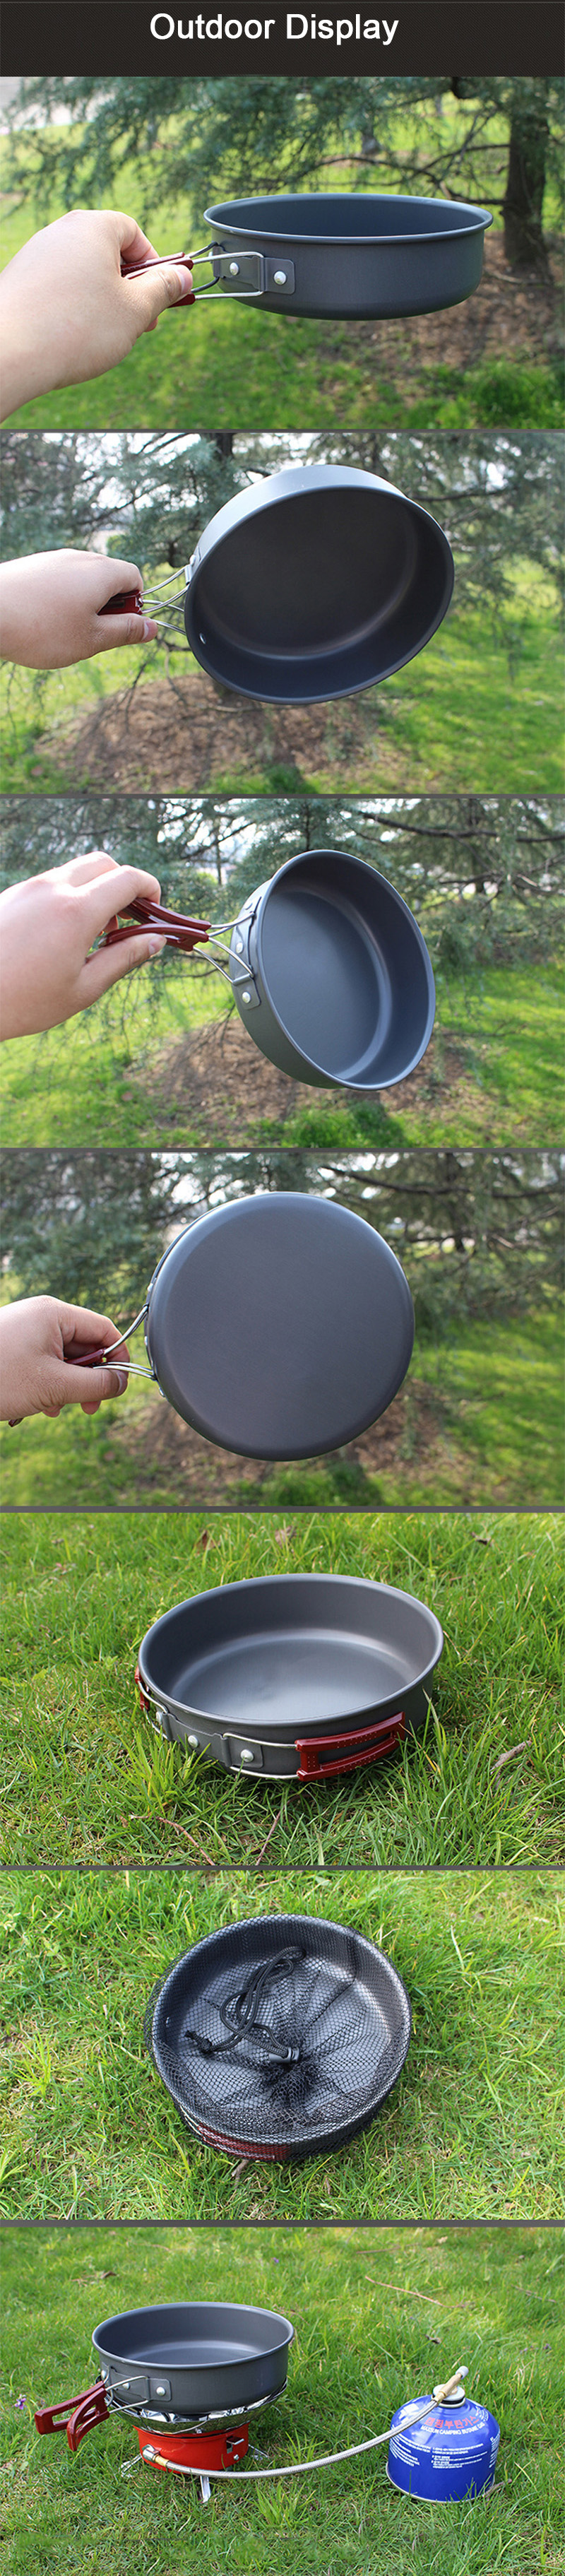 IPRee® 1.7L Outdoor Camping Non-stick Pot Portable Picnic Skillet Frying Pan Tableware Cookware